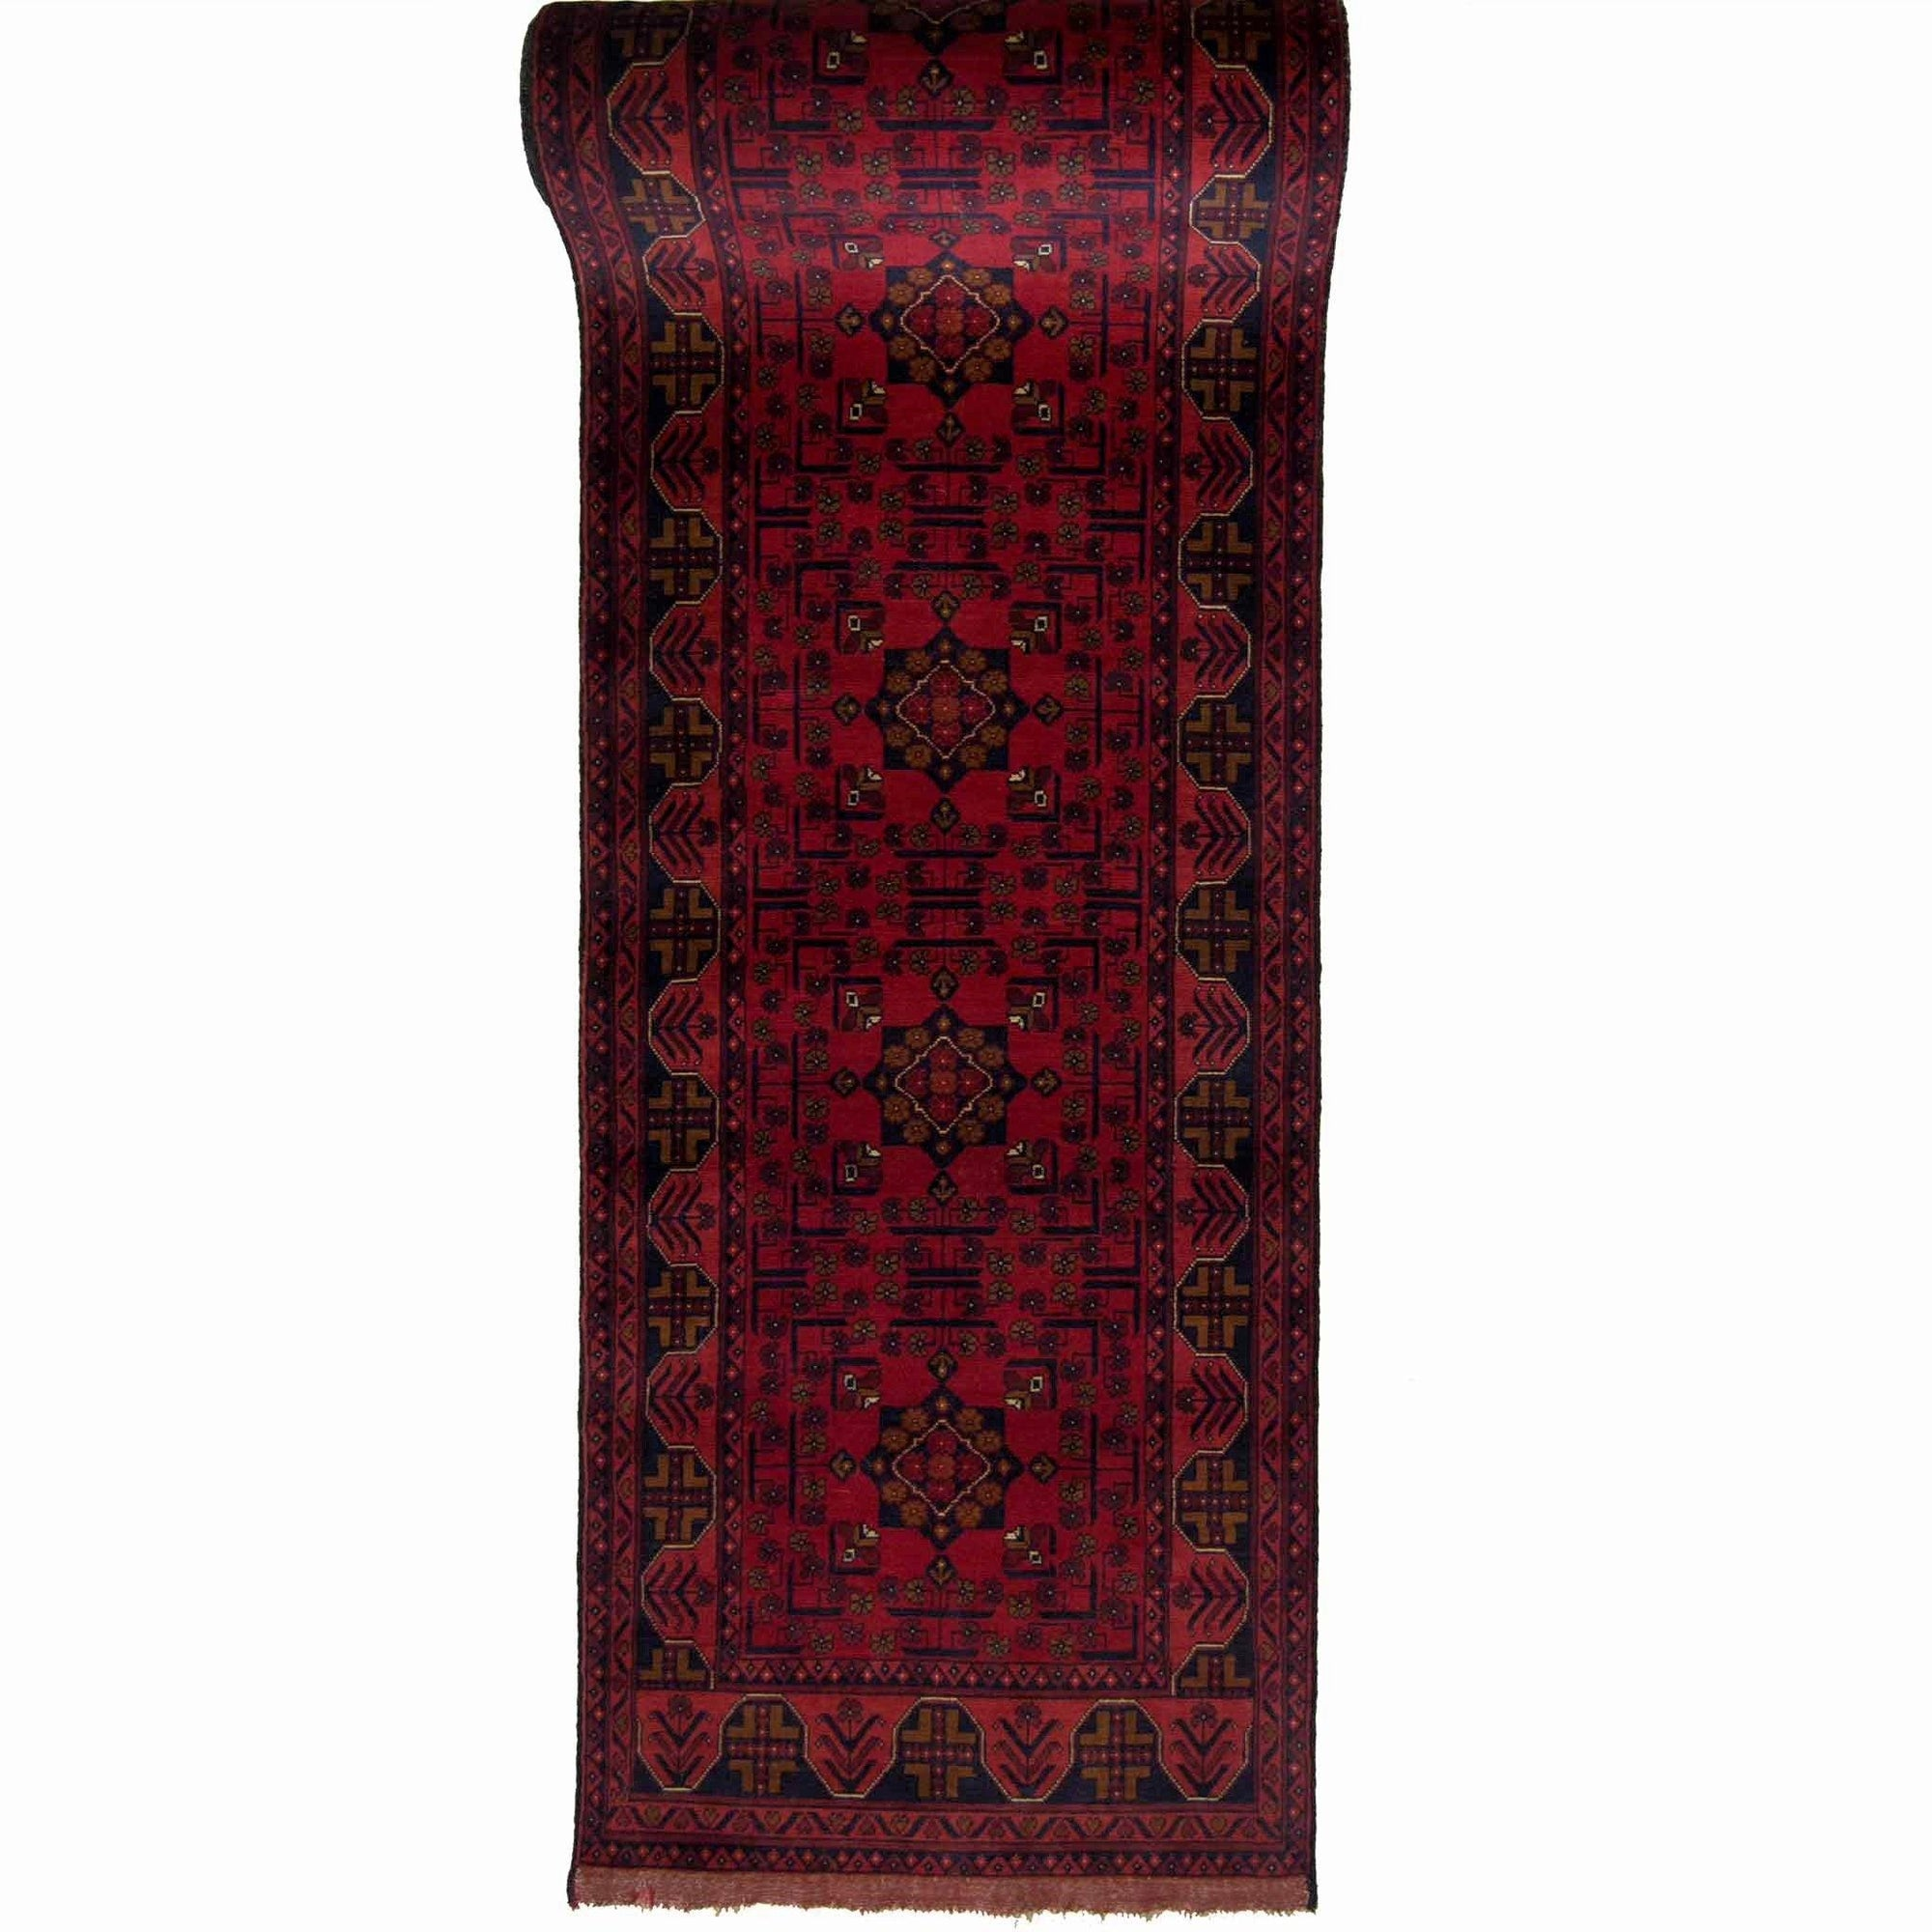 Fine Hand-knotted Afghan Khal Mohammadi Runner 80cm x 974cm Persian-Rug | House-of-Haghi | NewMarket | Auckland | NZ | Handmade Persian Rugs | Hand Knotted Persian Rugs